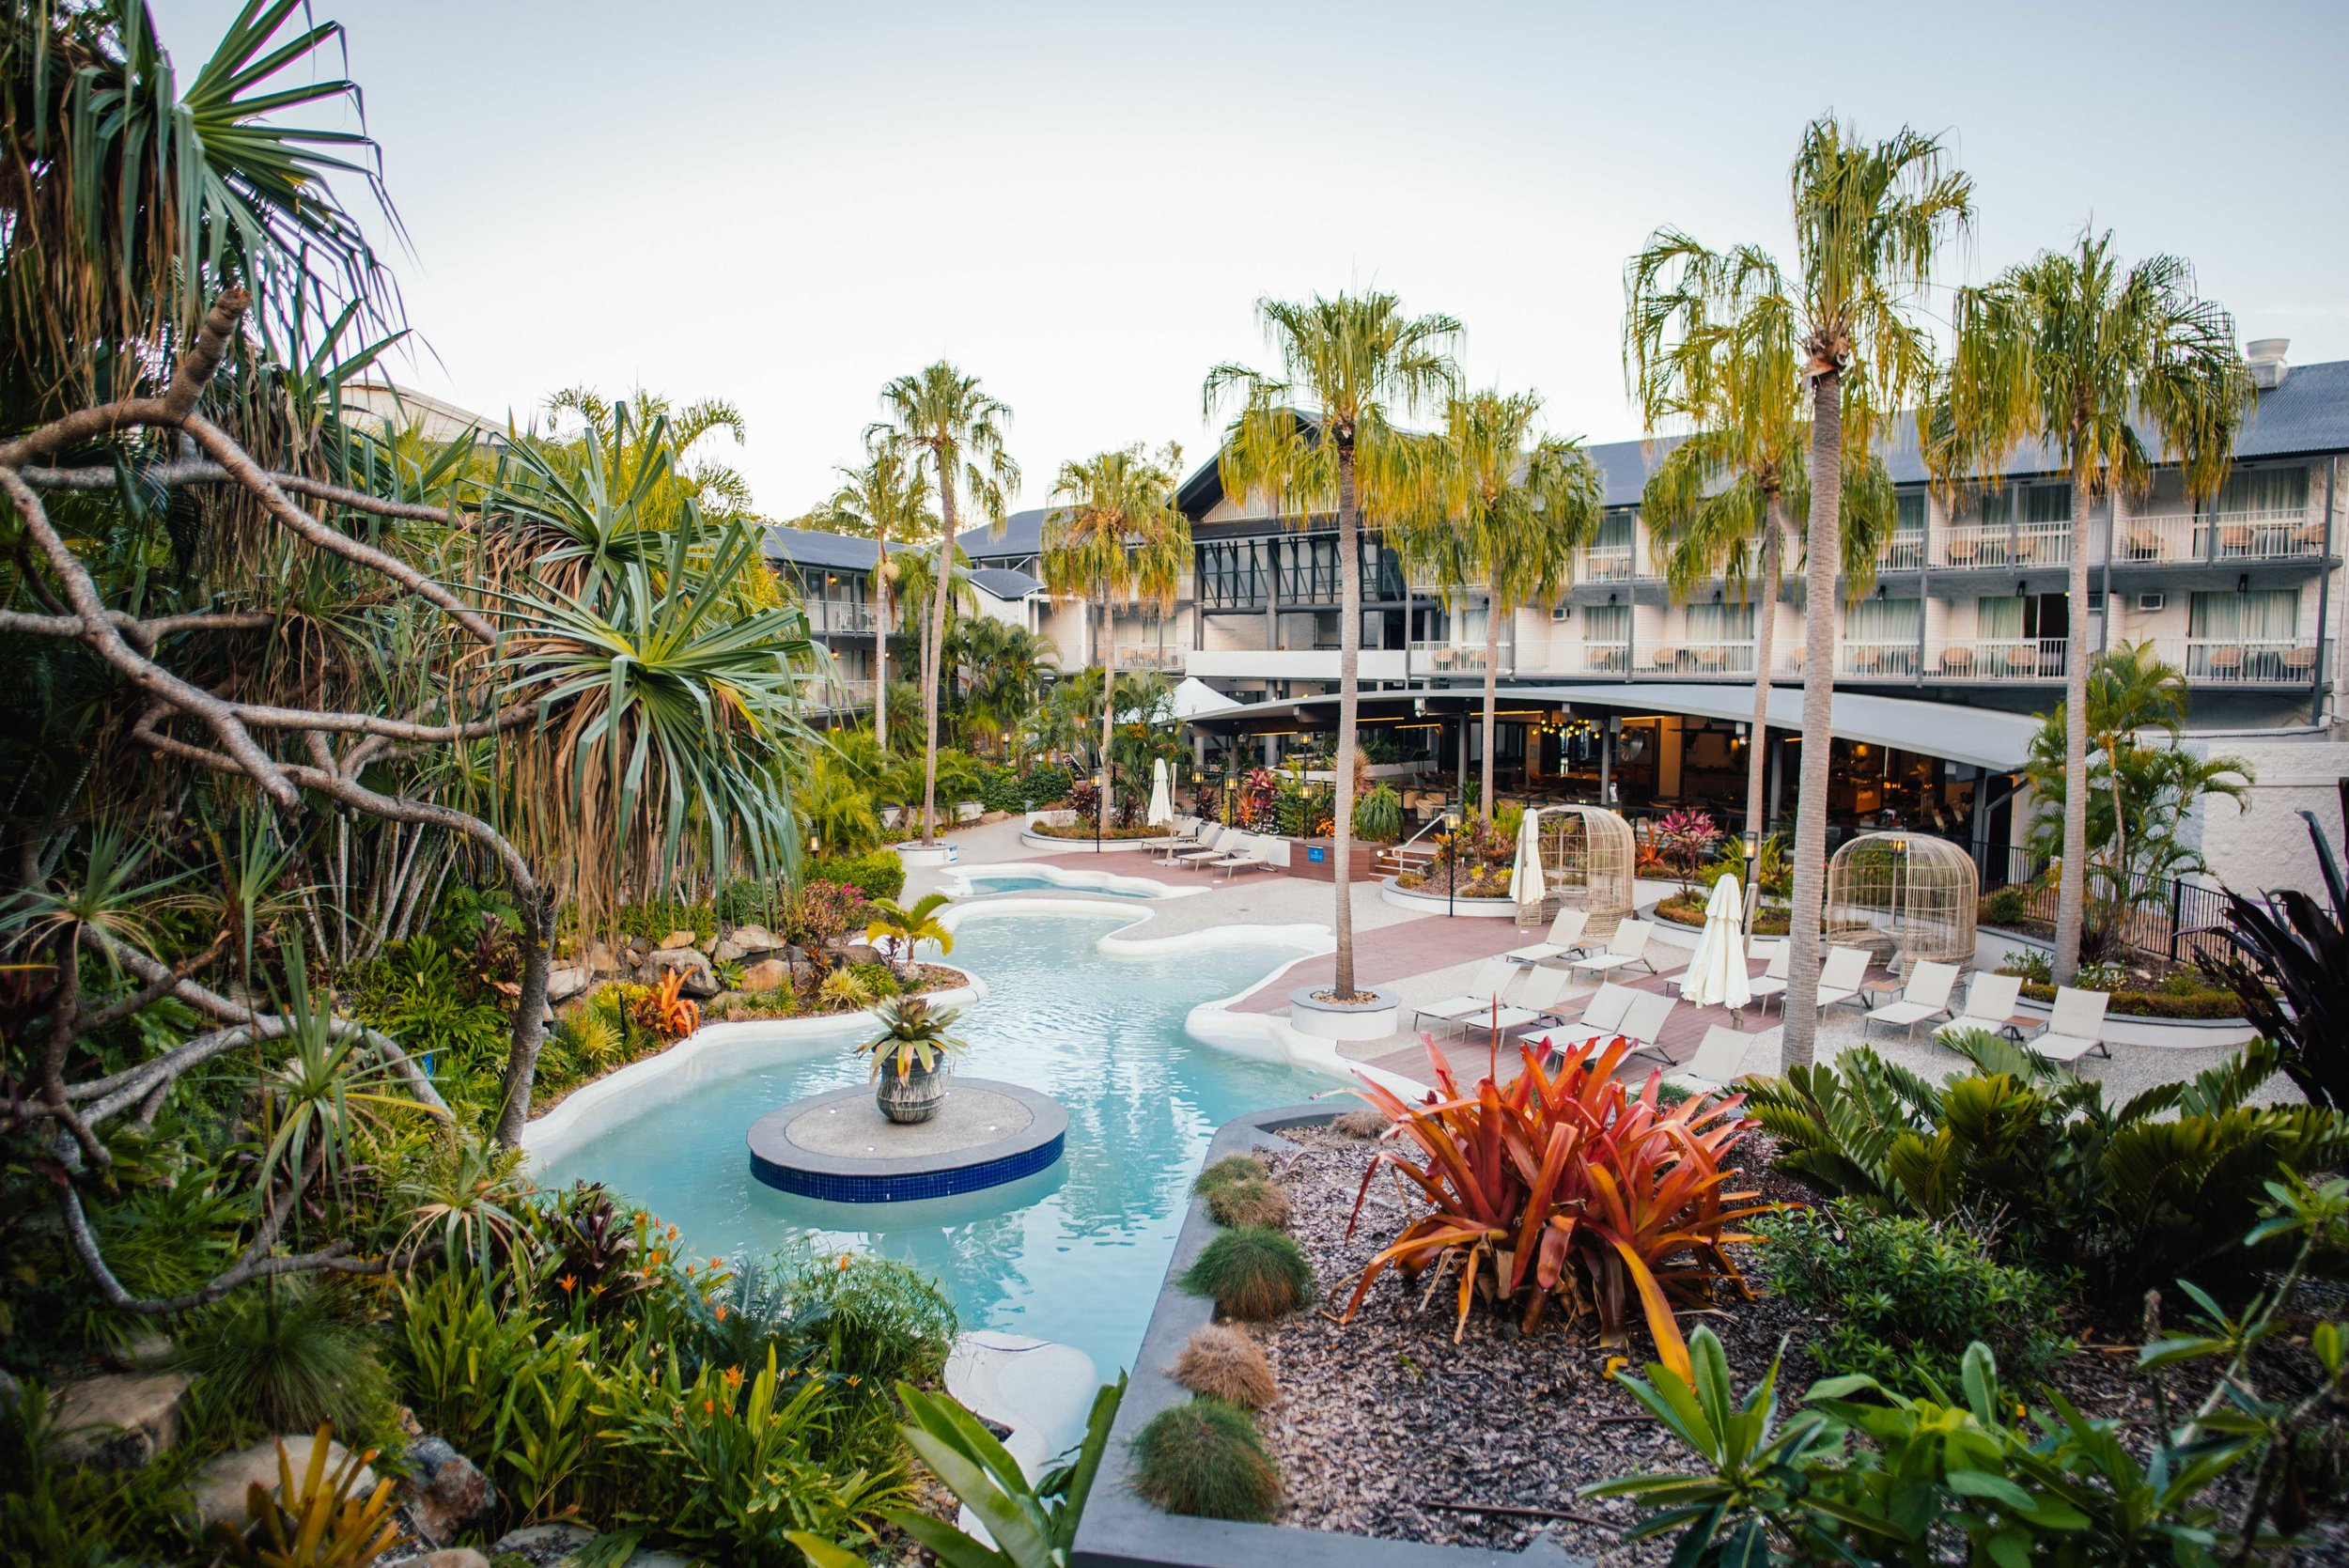 Mantra - Airlie Beach - A new look for the famous Mantra Club Croc hotel in Airlie Beach, Queensland